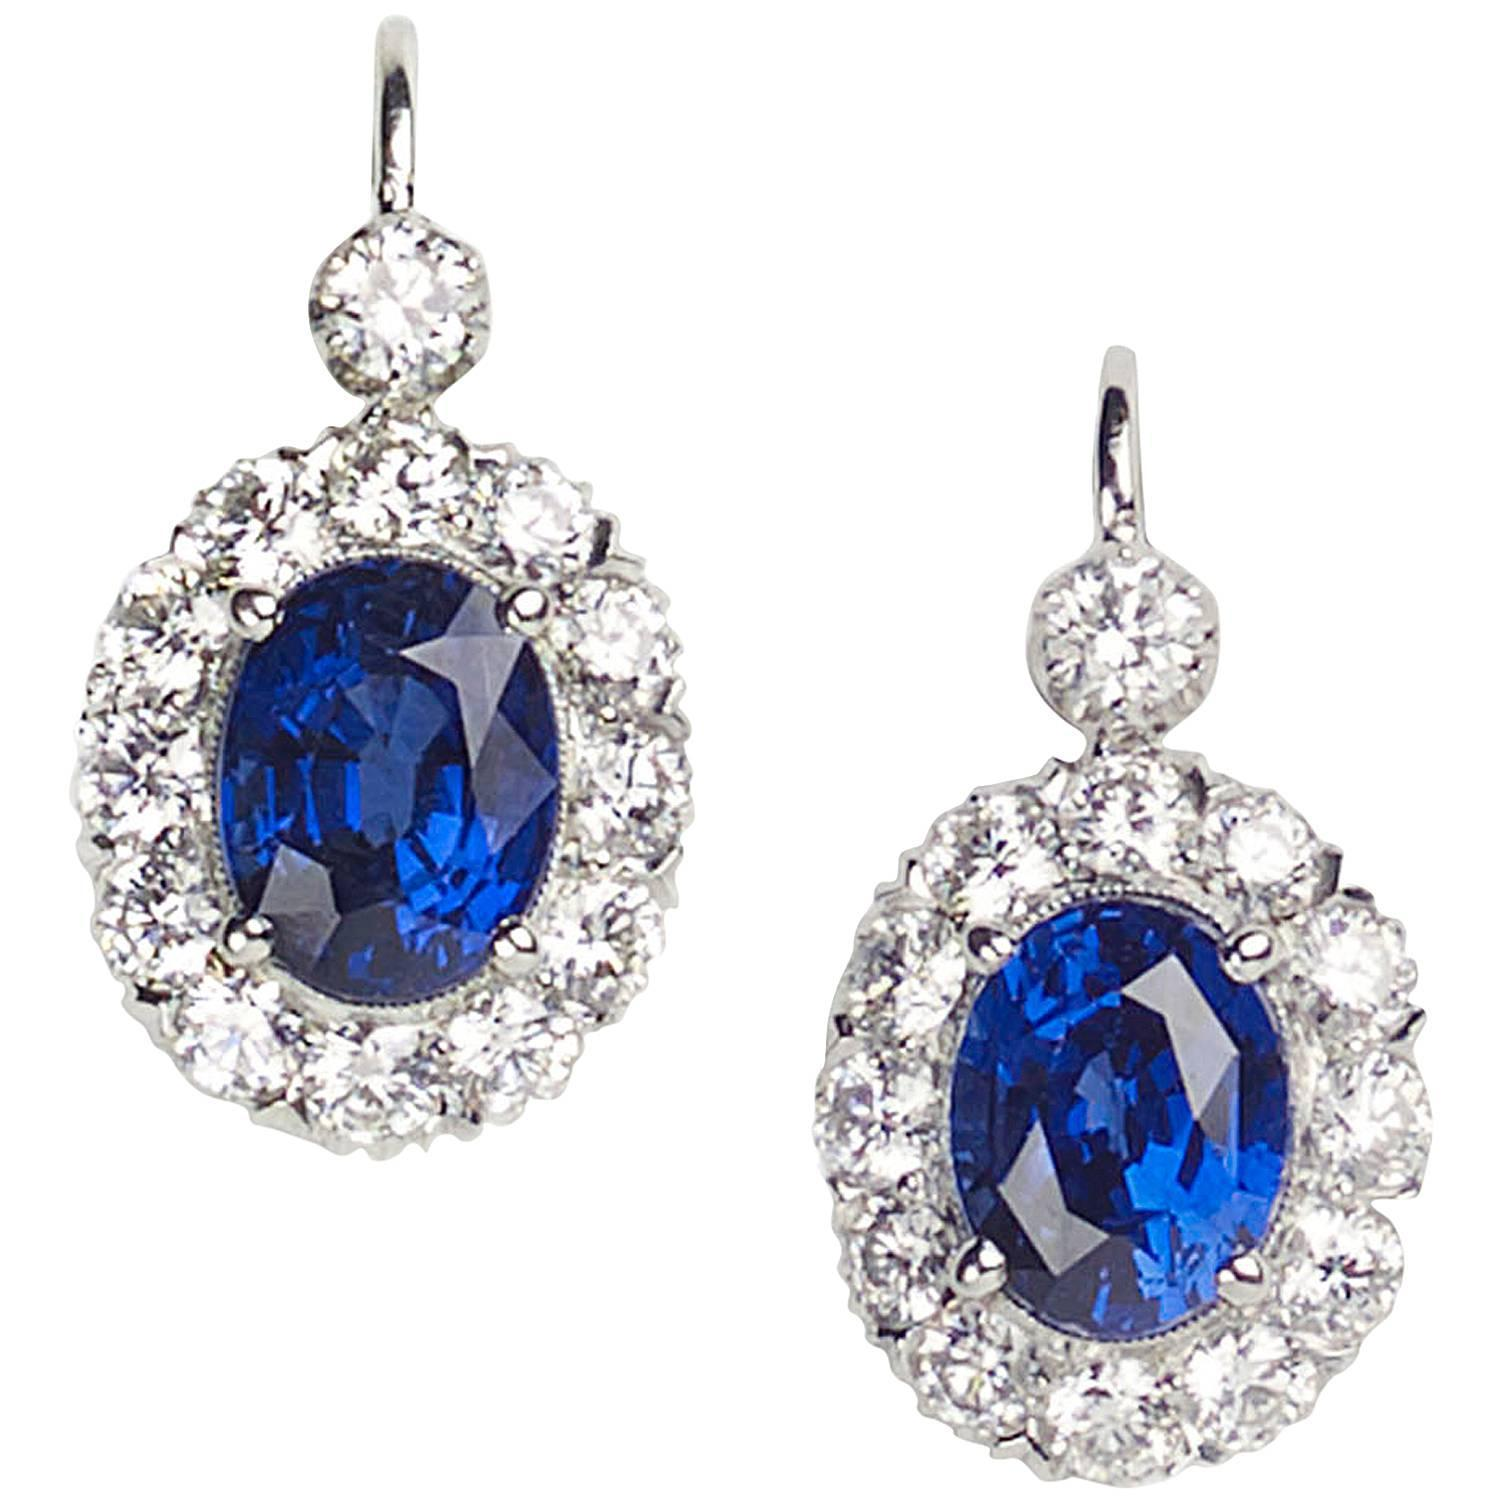 Oval Royal Blue Sapphire Diamond Cluster Earrings at 1stdibs